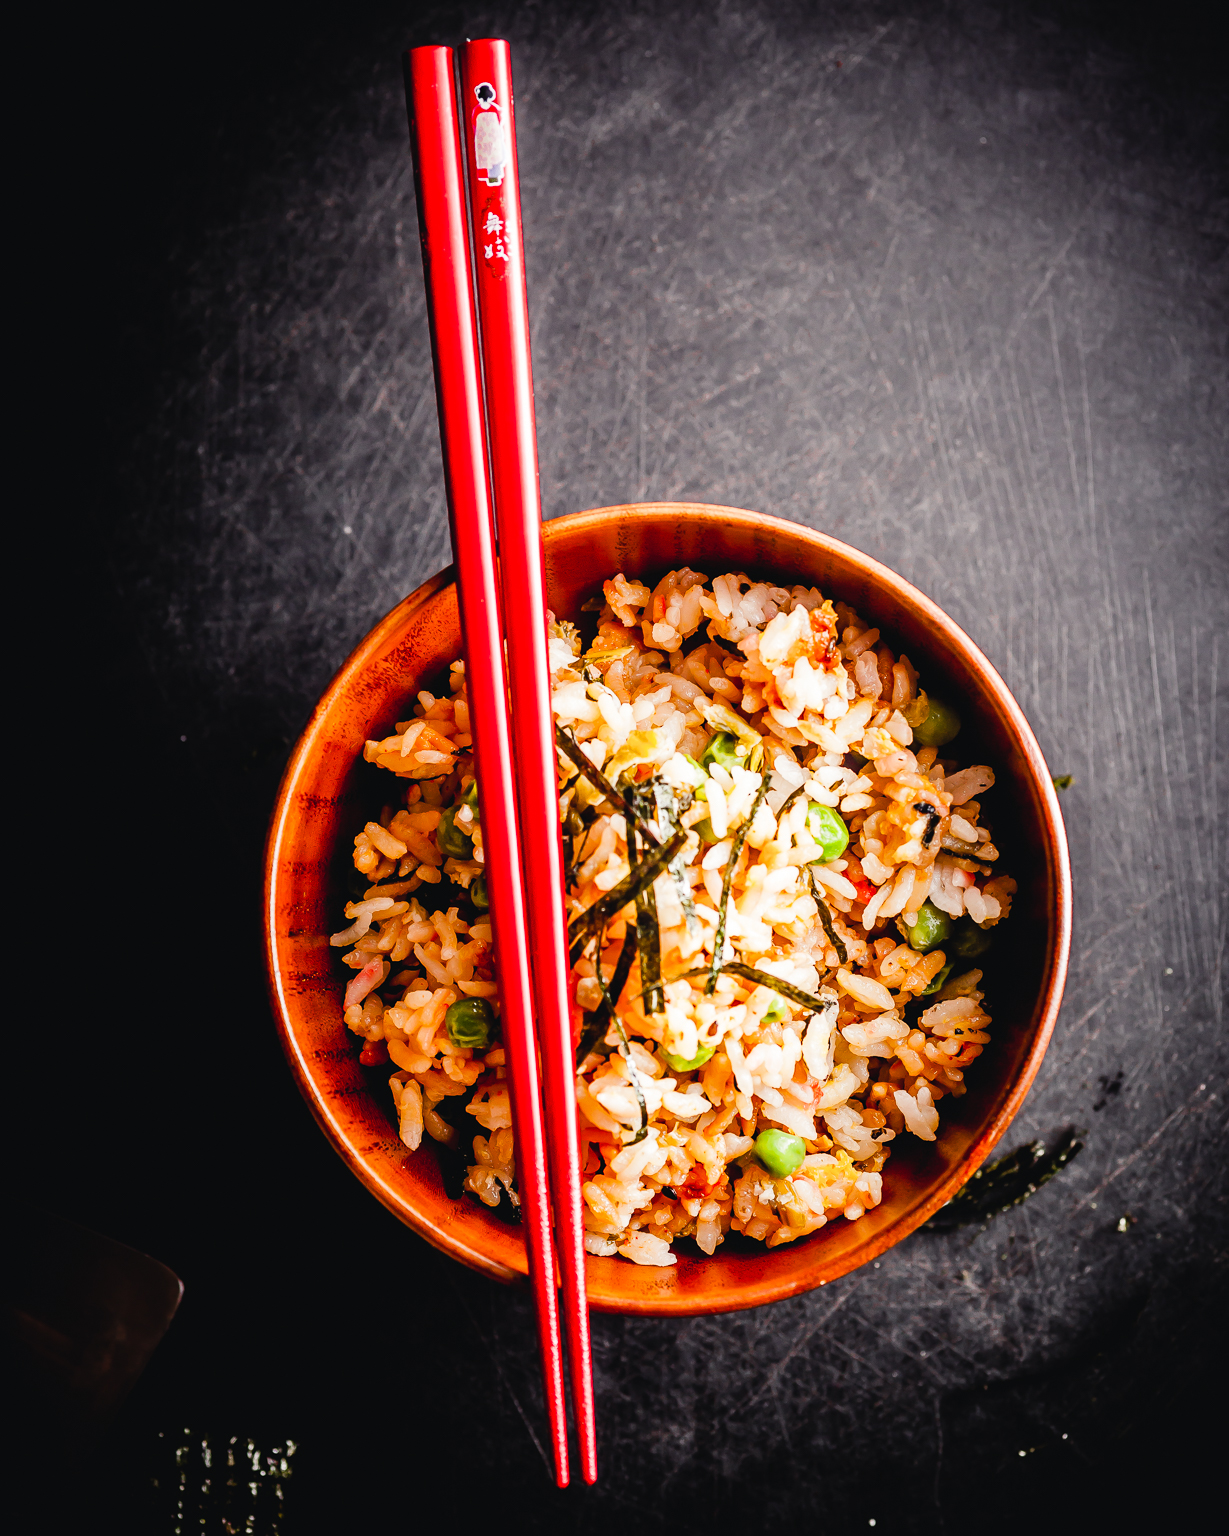 takana fried rice @ thatothercookingblog.com